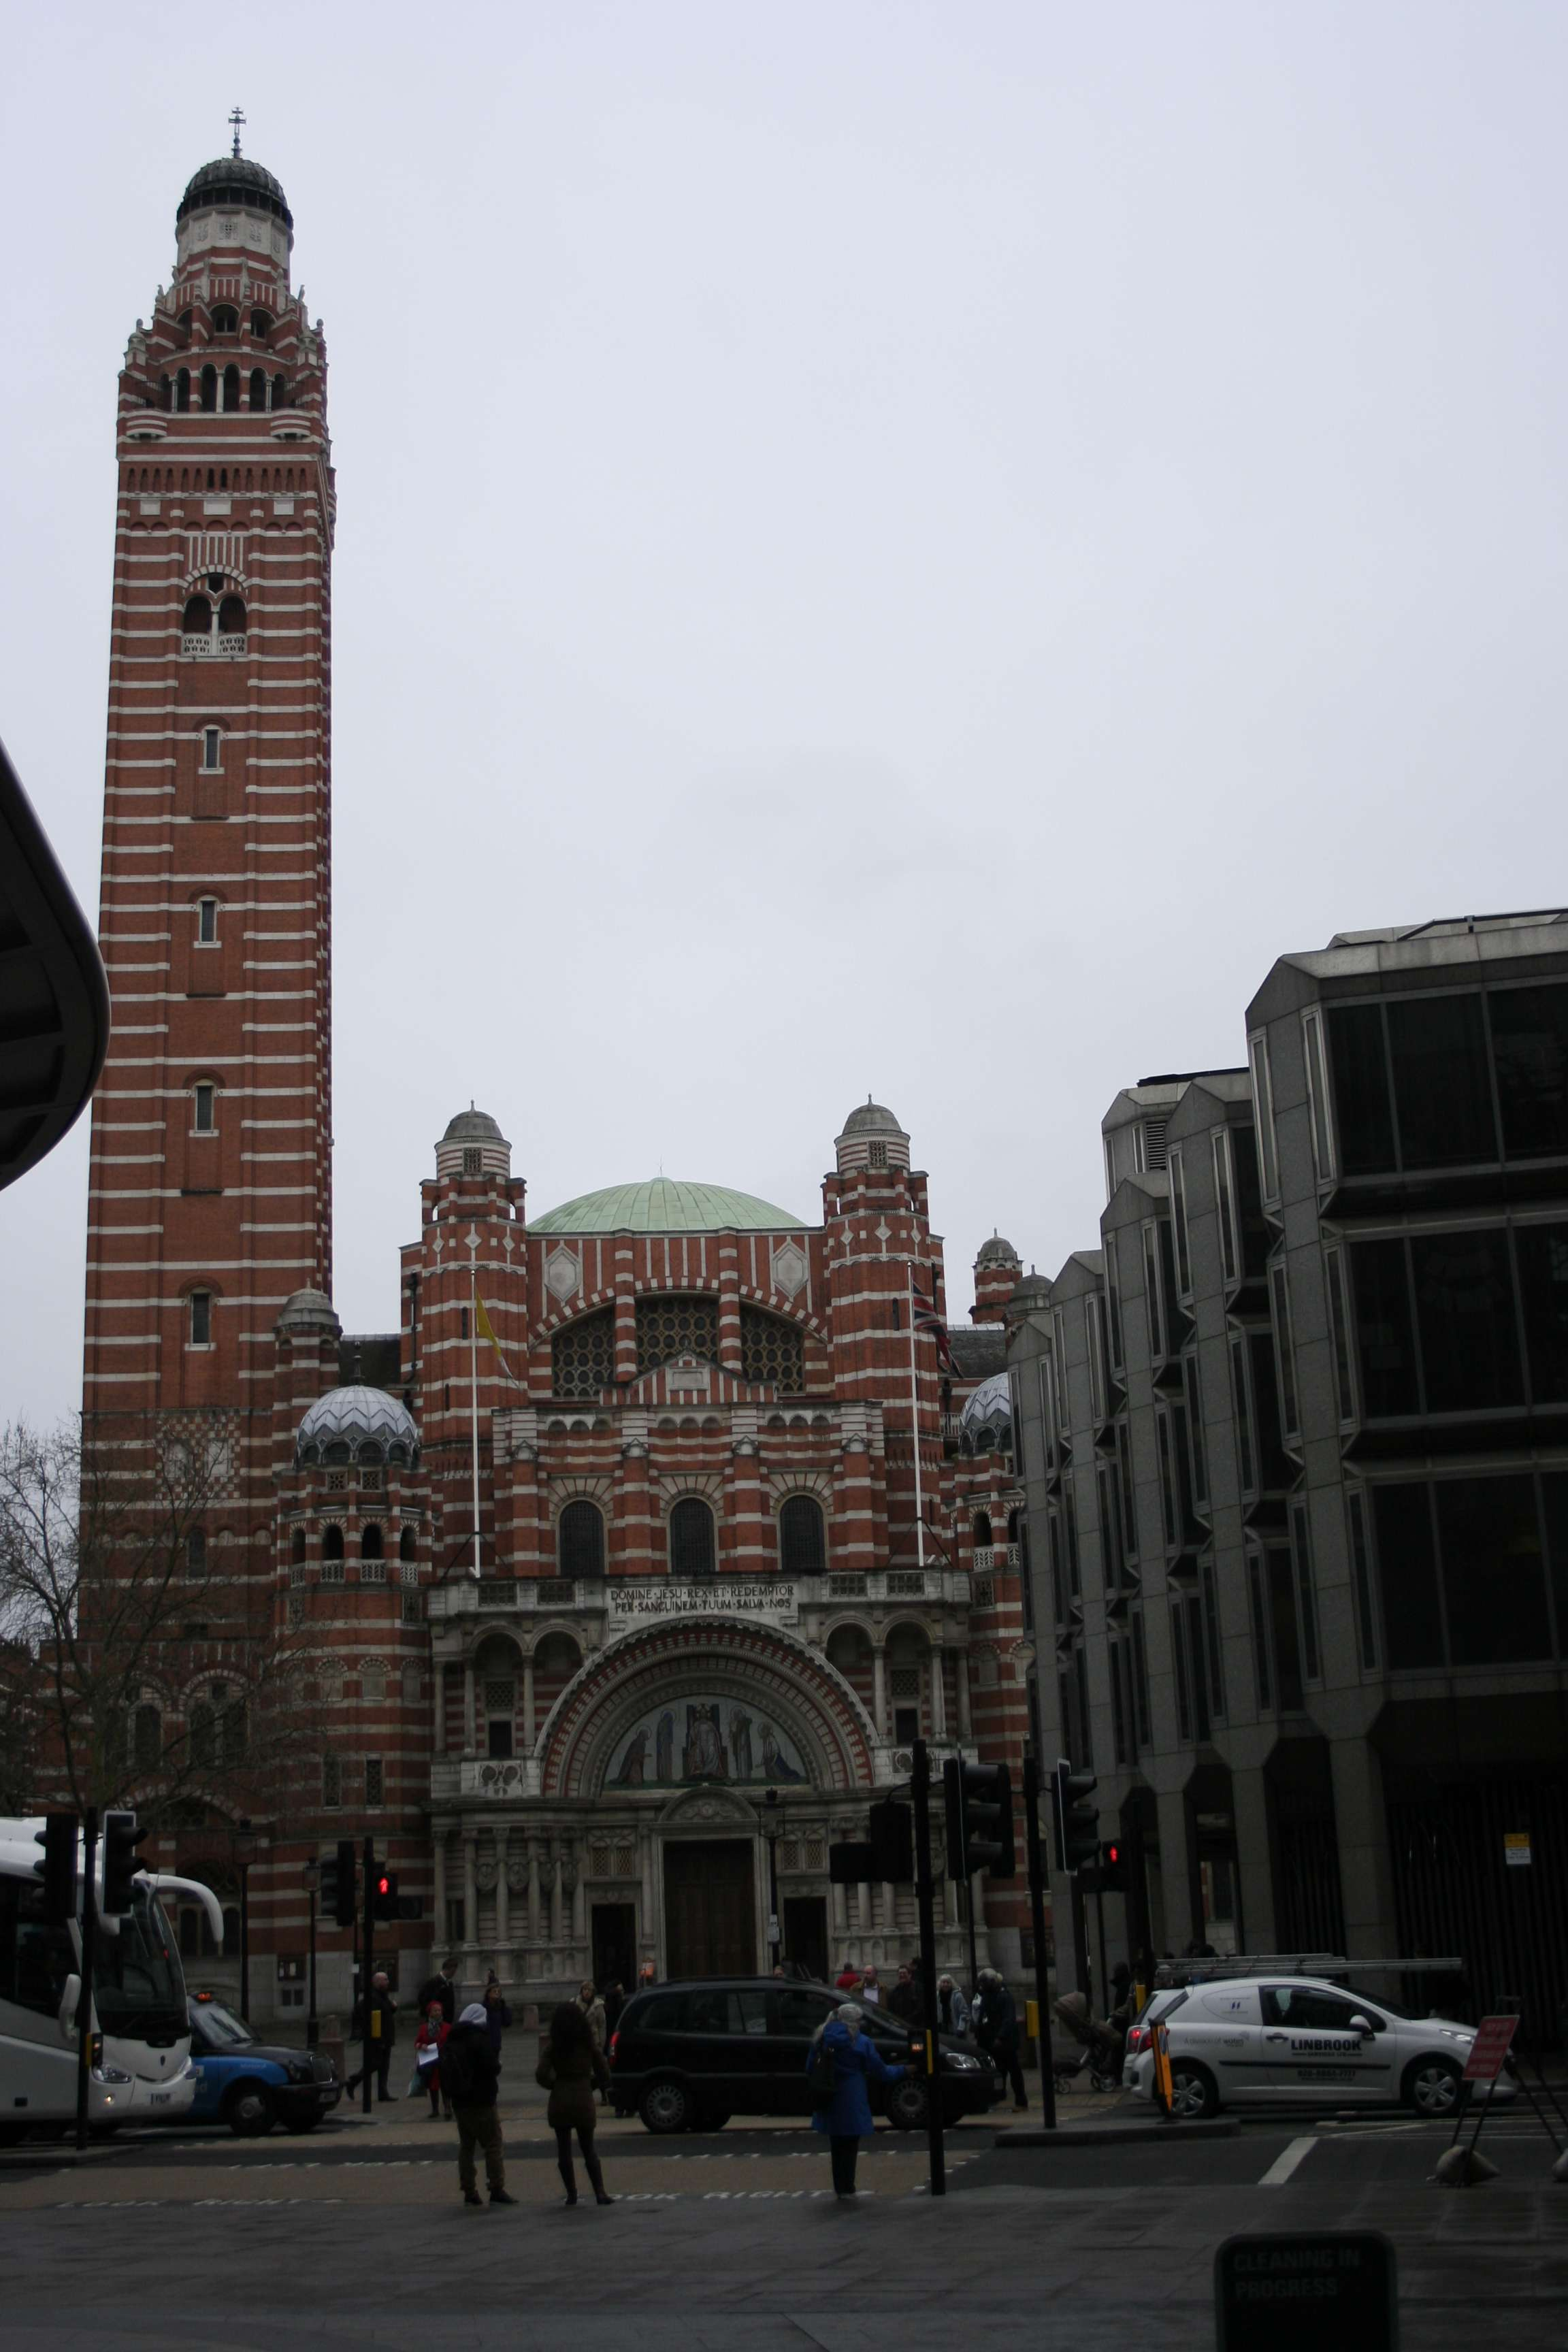 London_0157 Westminster cathedral